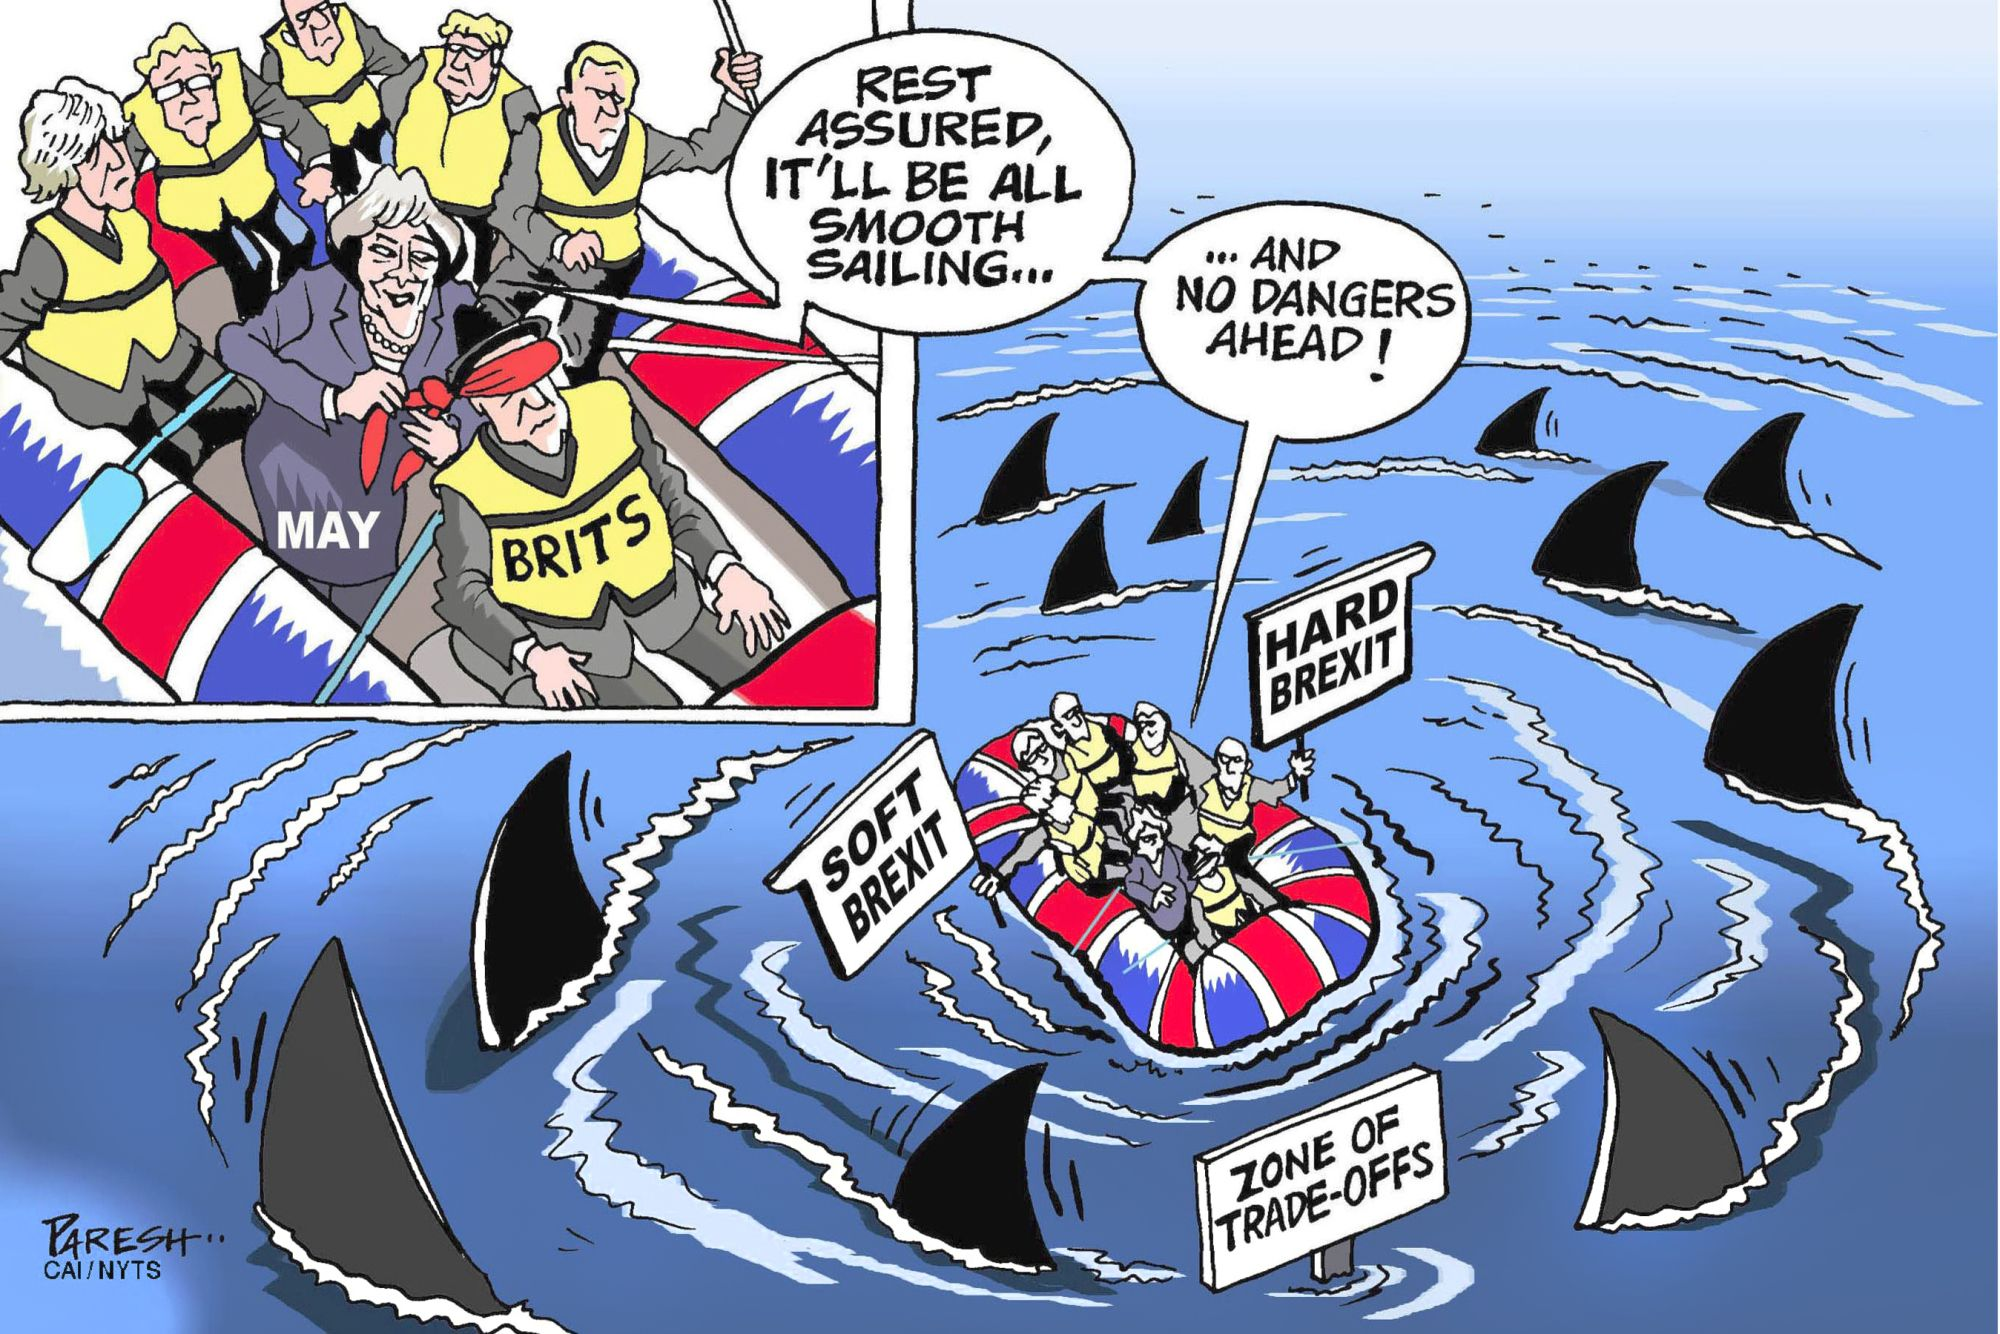 Brexit Cartoons Island Sinking Google Search Cartoon Island